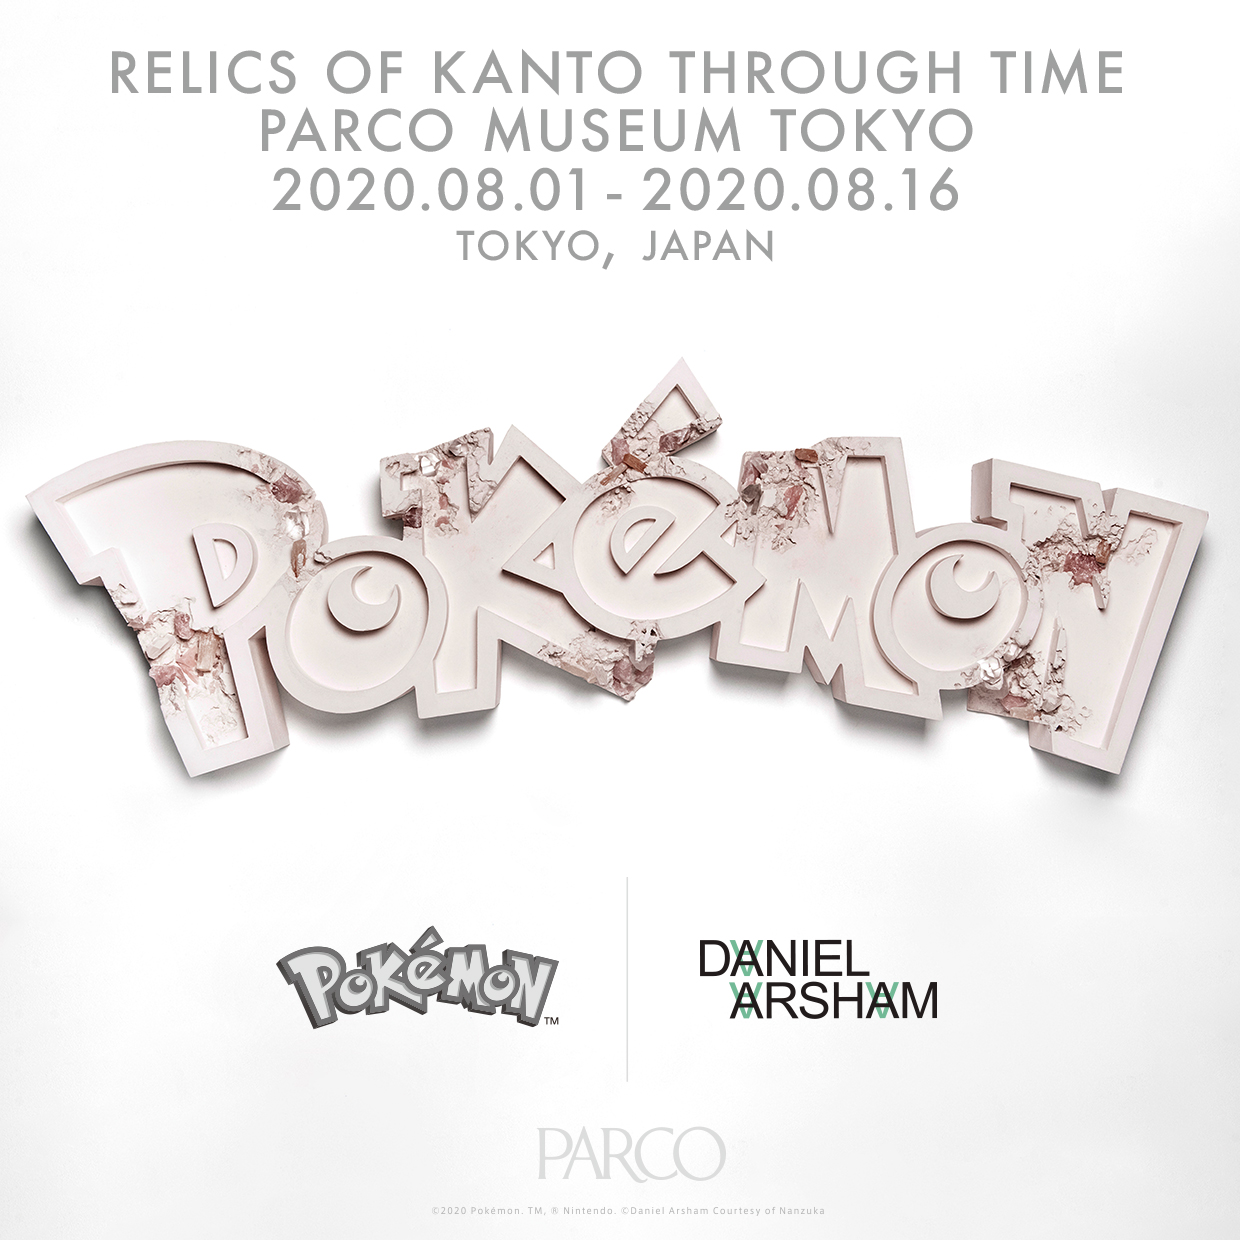 8/15(土)入場券『Relics of Kanto Through Time』